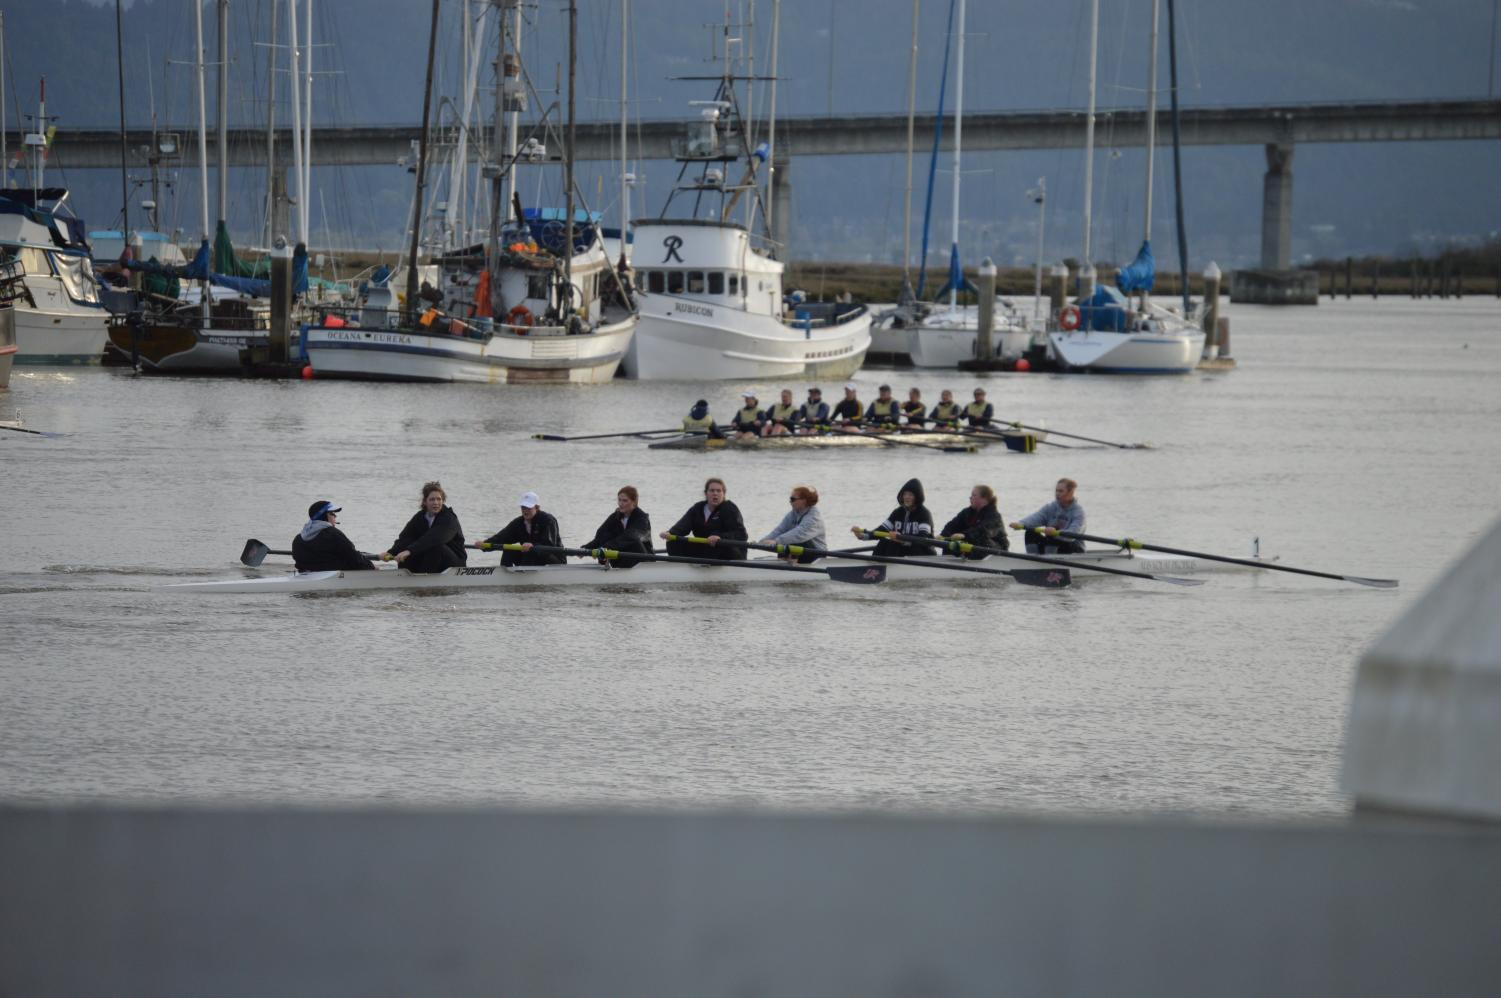 The Pacific women's rowing team has struggled with numbers in the past, but found a solid core of rowers for their upcoming season.